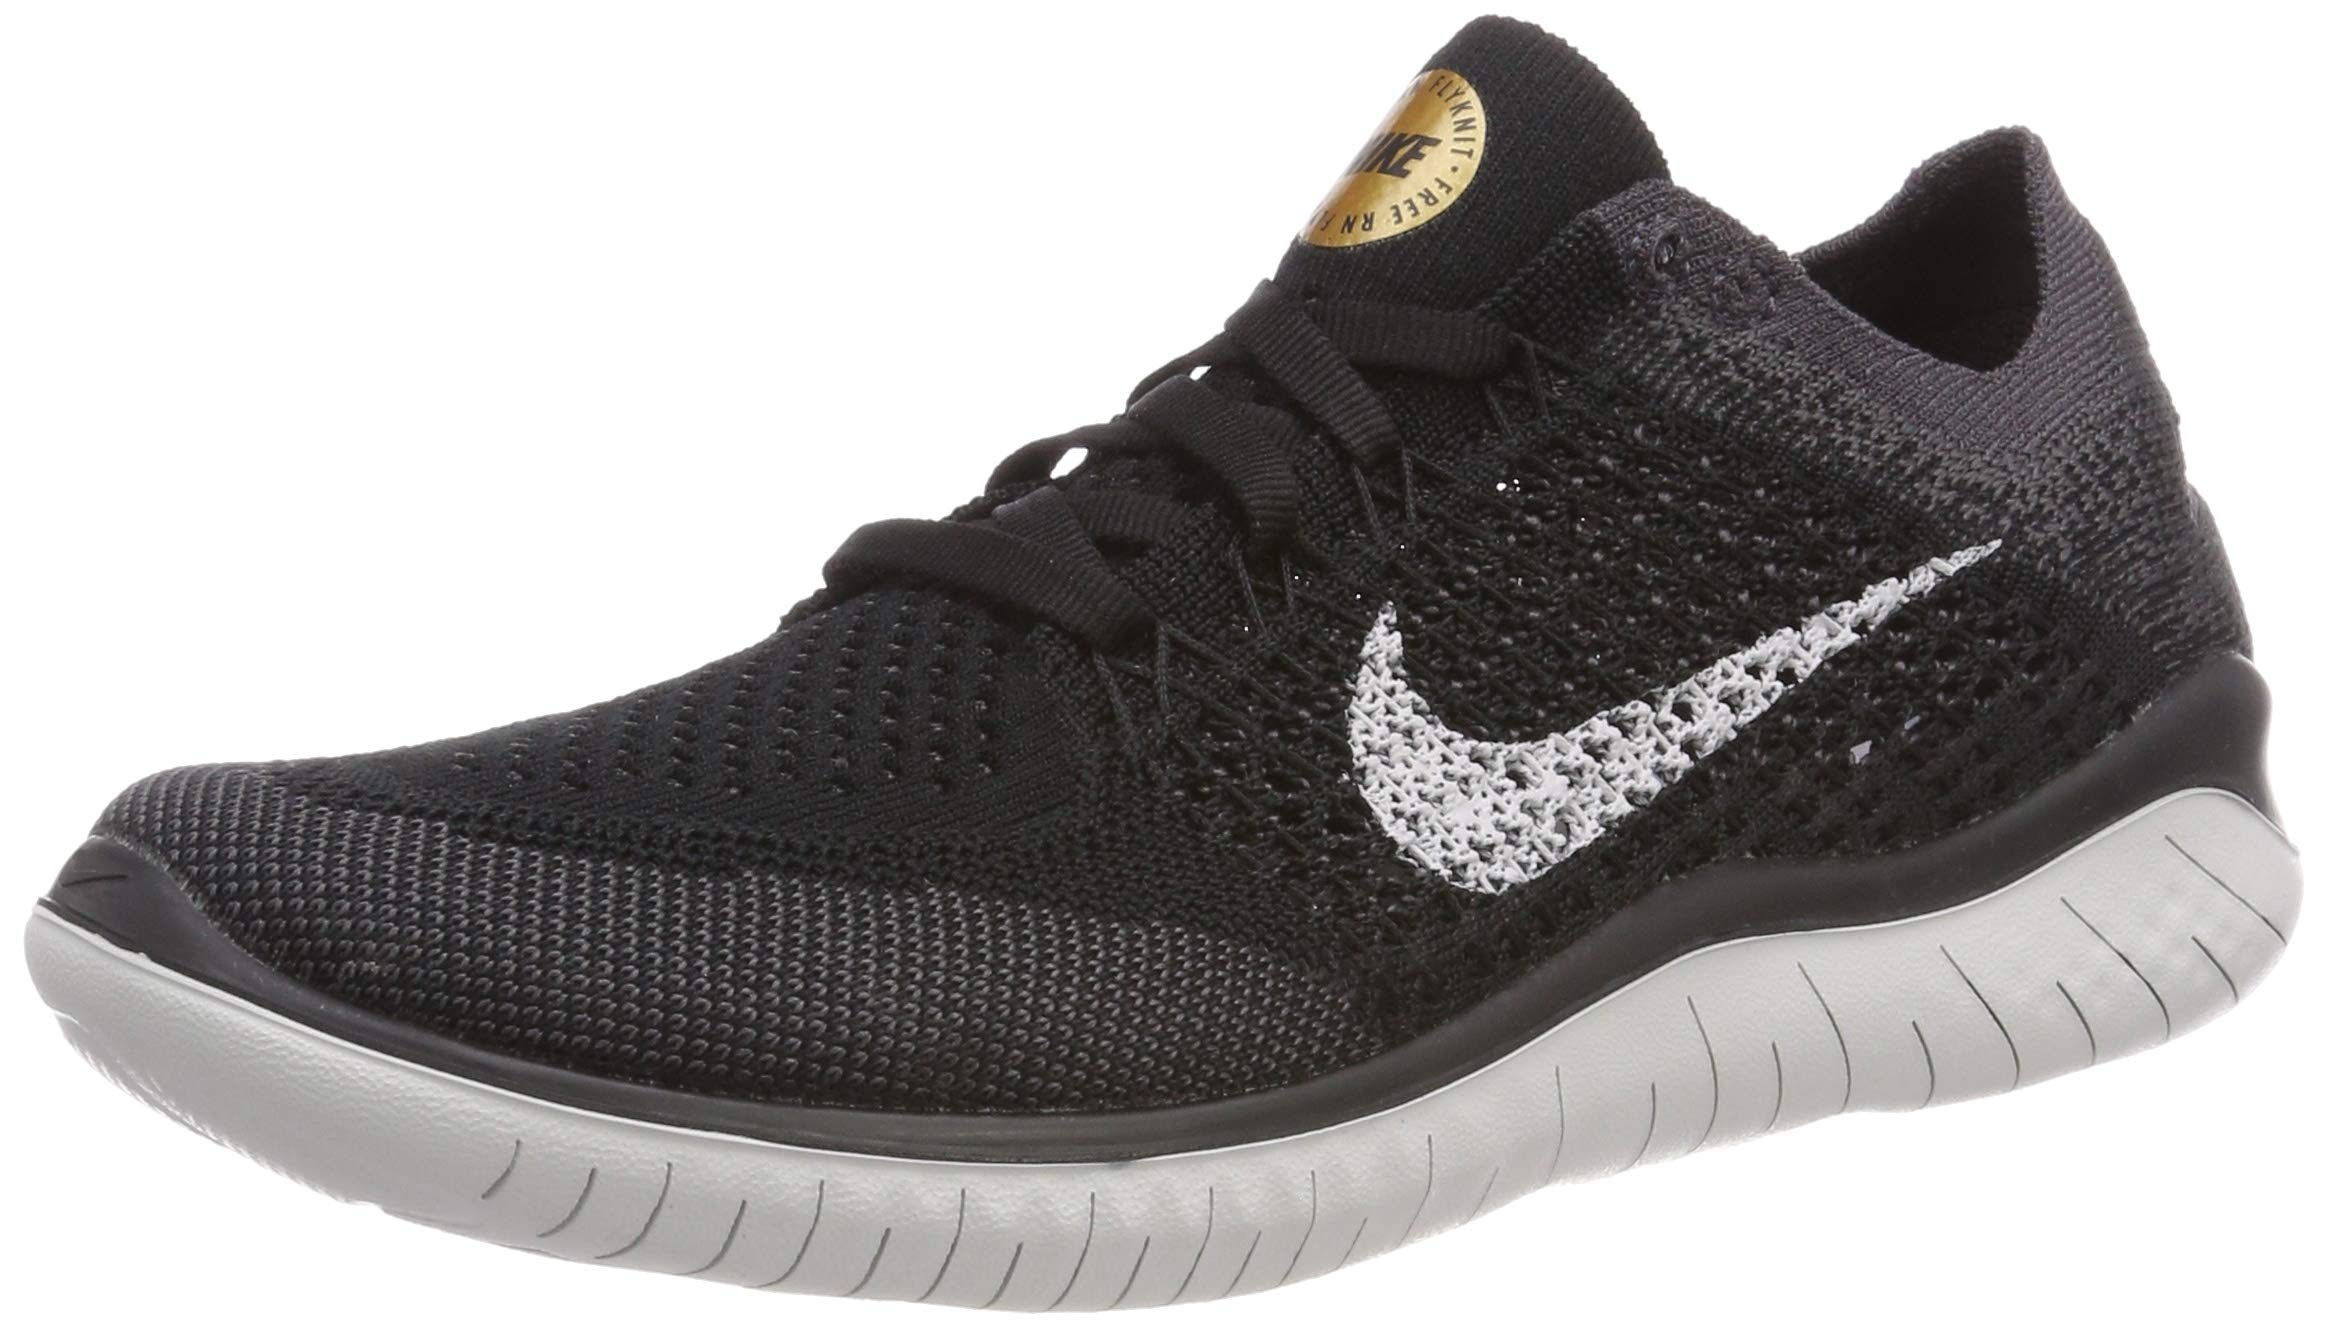 Nike Womens Free RN Flyknit 2018 Running Shoes (8.5) by Nike